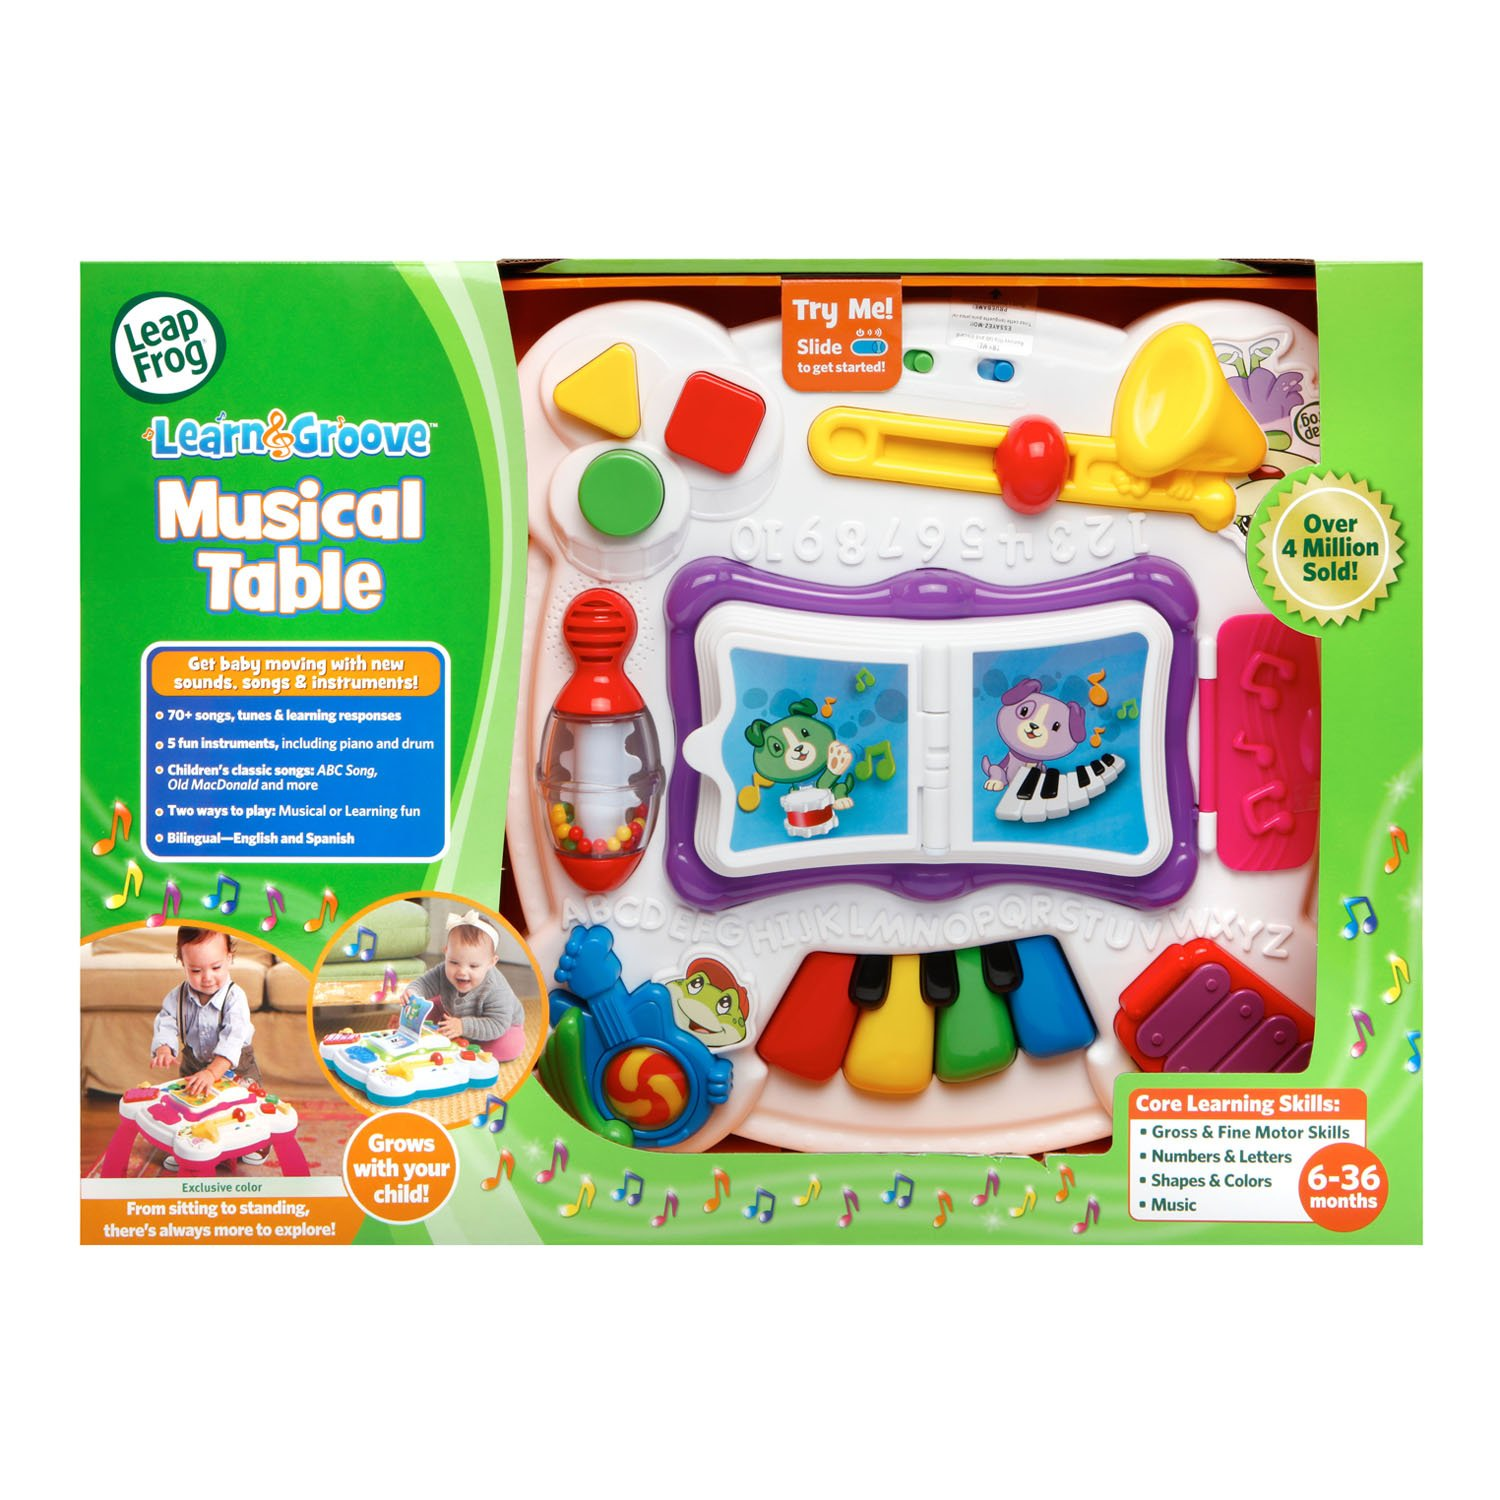 LeapFrog Learn and Groove Musical Table Activity Center Amazon Exclusive, Pink by LeapFrog (Image #7)